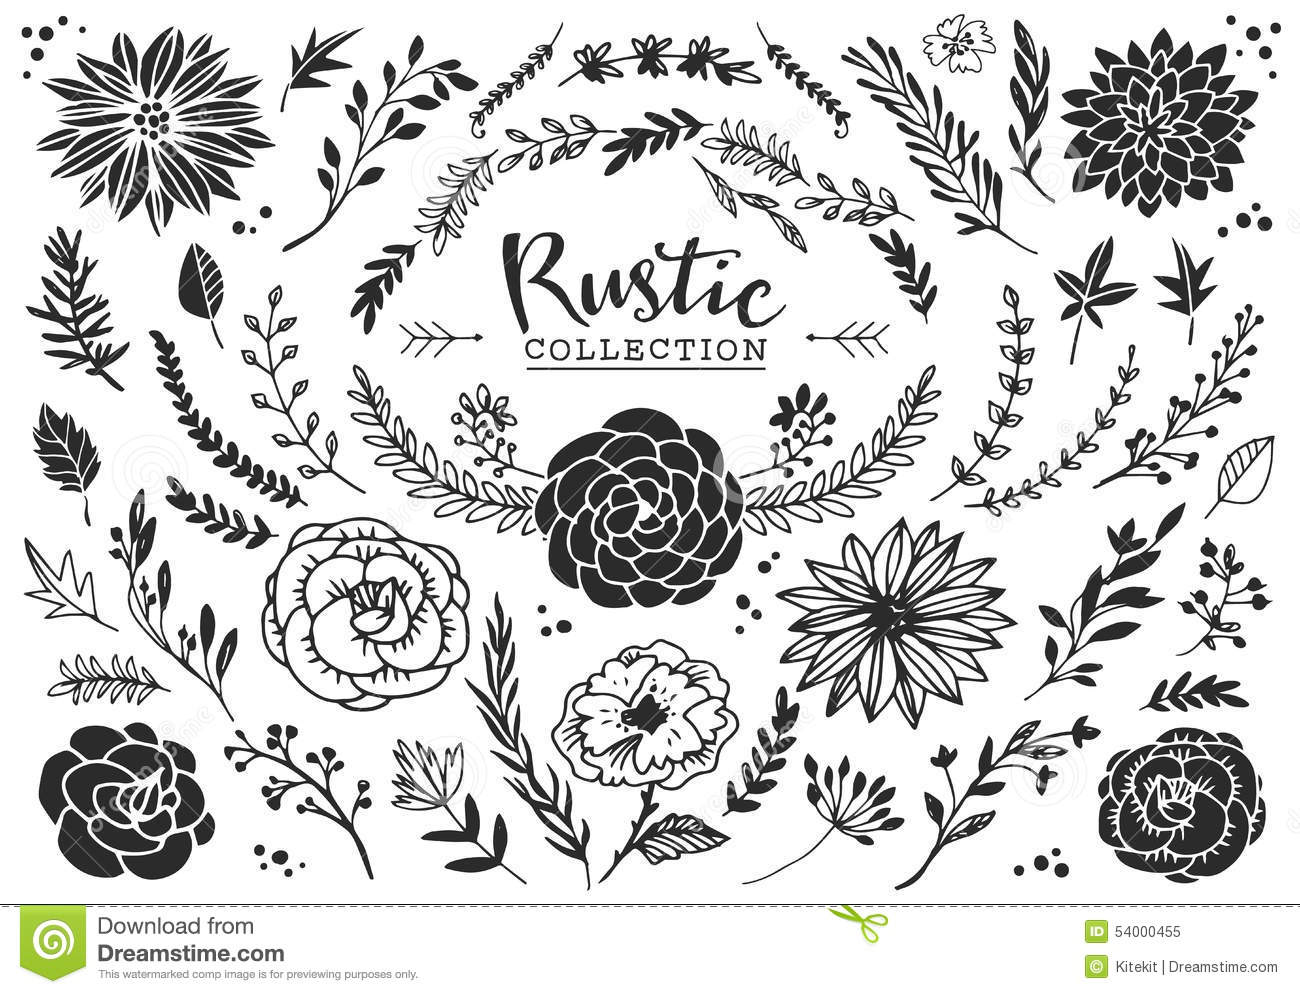 Free rustic clipart 9 » Clipart Station.